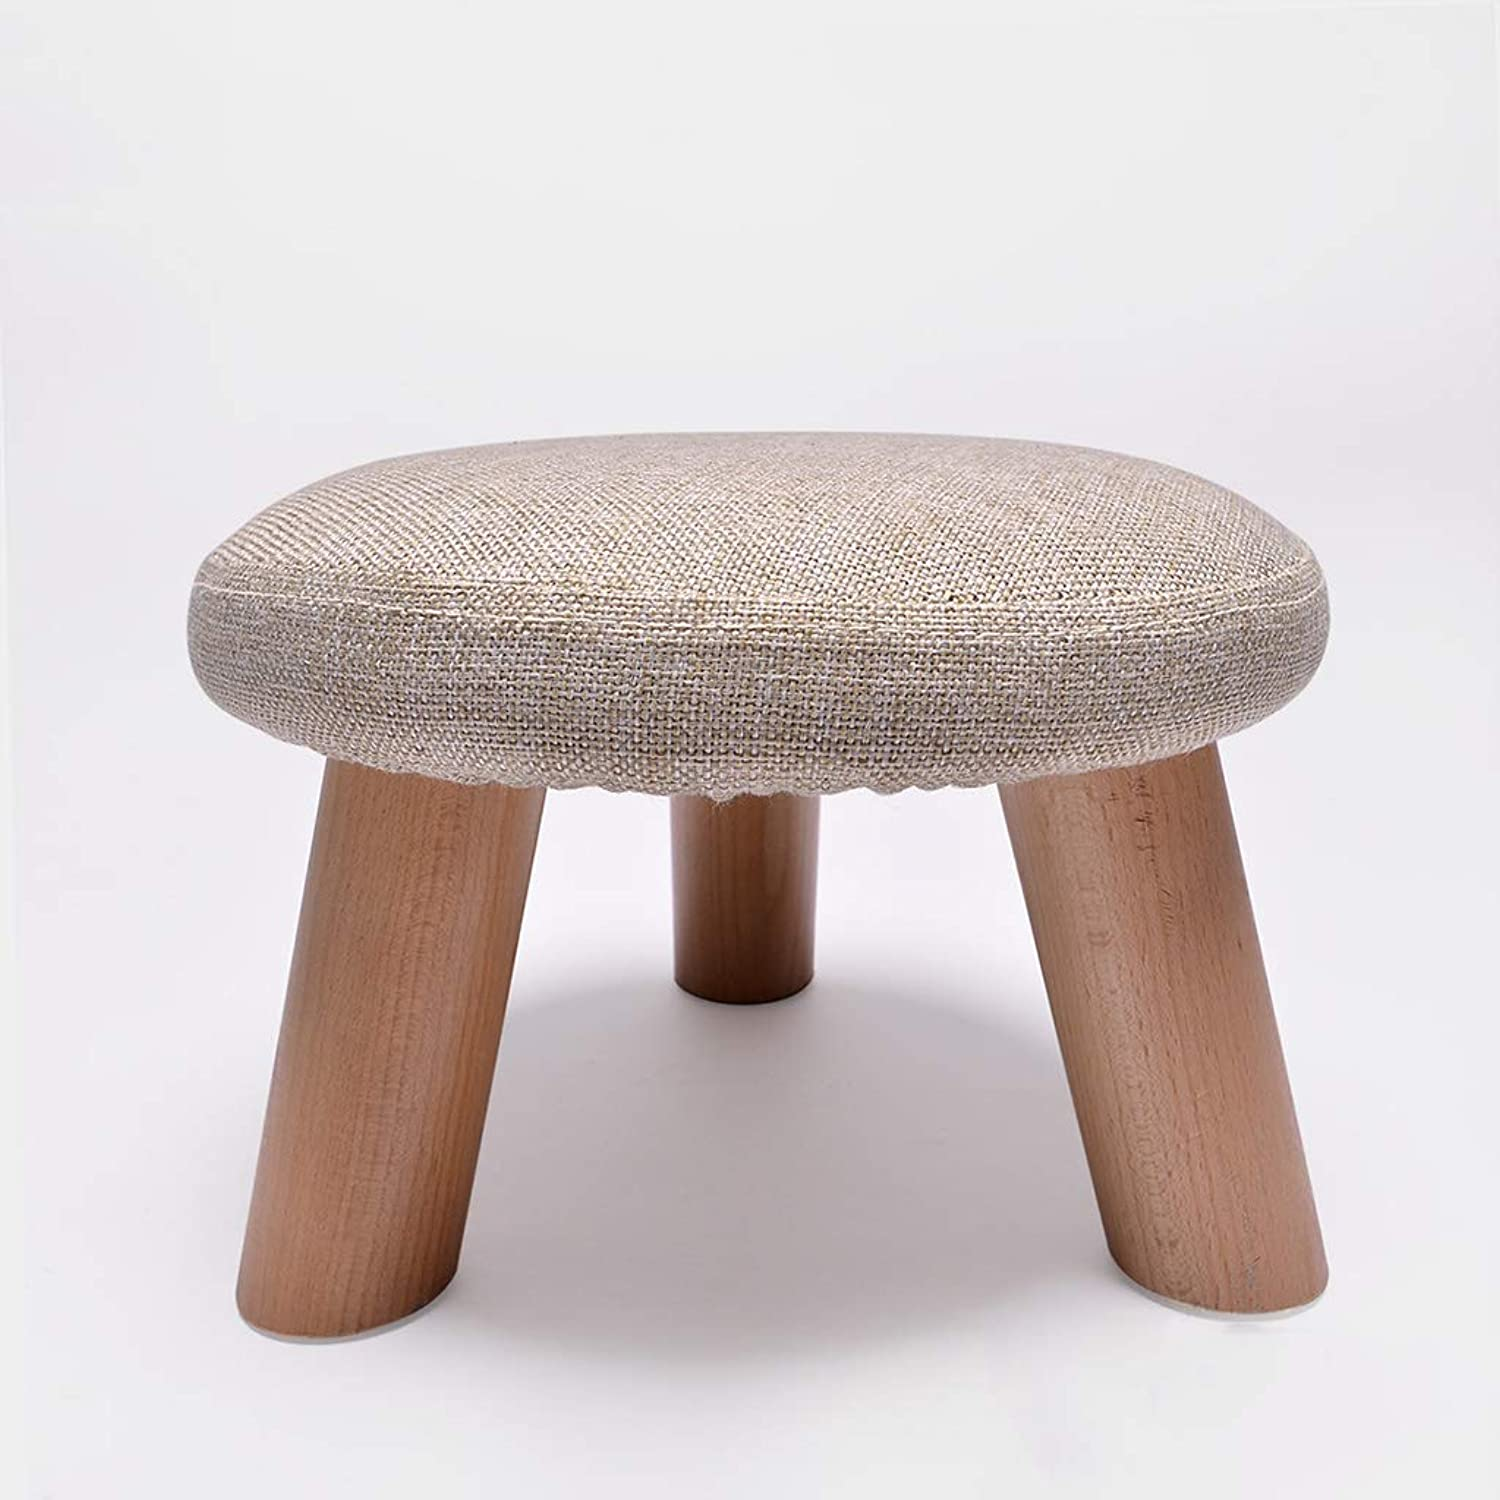 Small Stool Solid Wood shoes Bench Footstool Round Padded Footstool 3 Wooden Legs (color   A, Size   30  21CM)